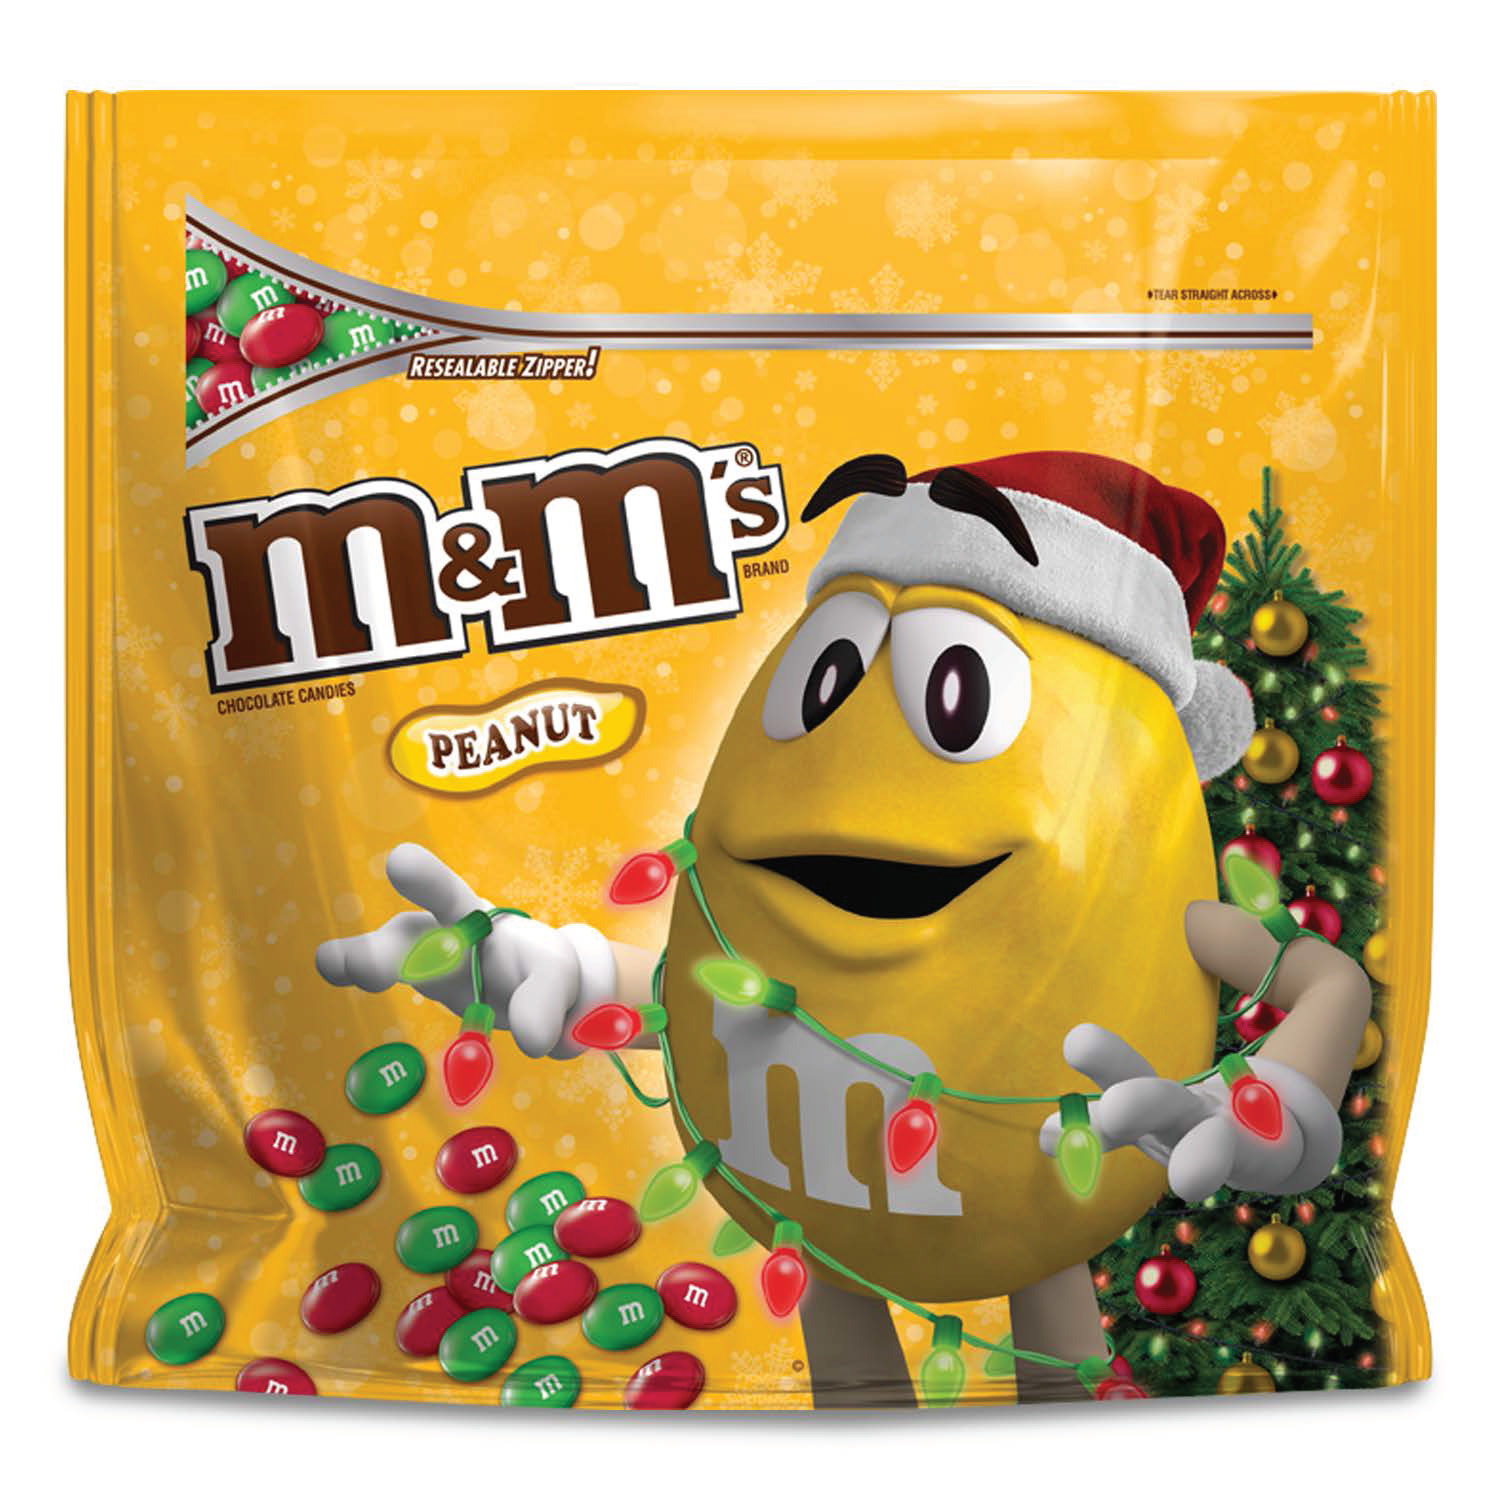 M&M's, Holiday Peanut Chocolate Christmas Candy Party Size, 42 Oz